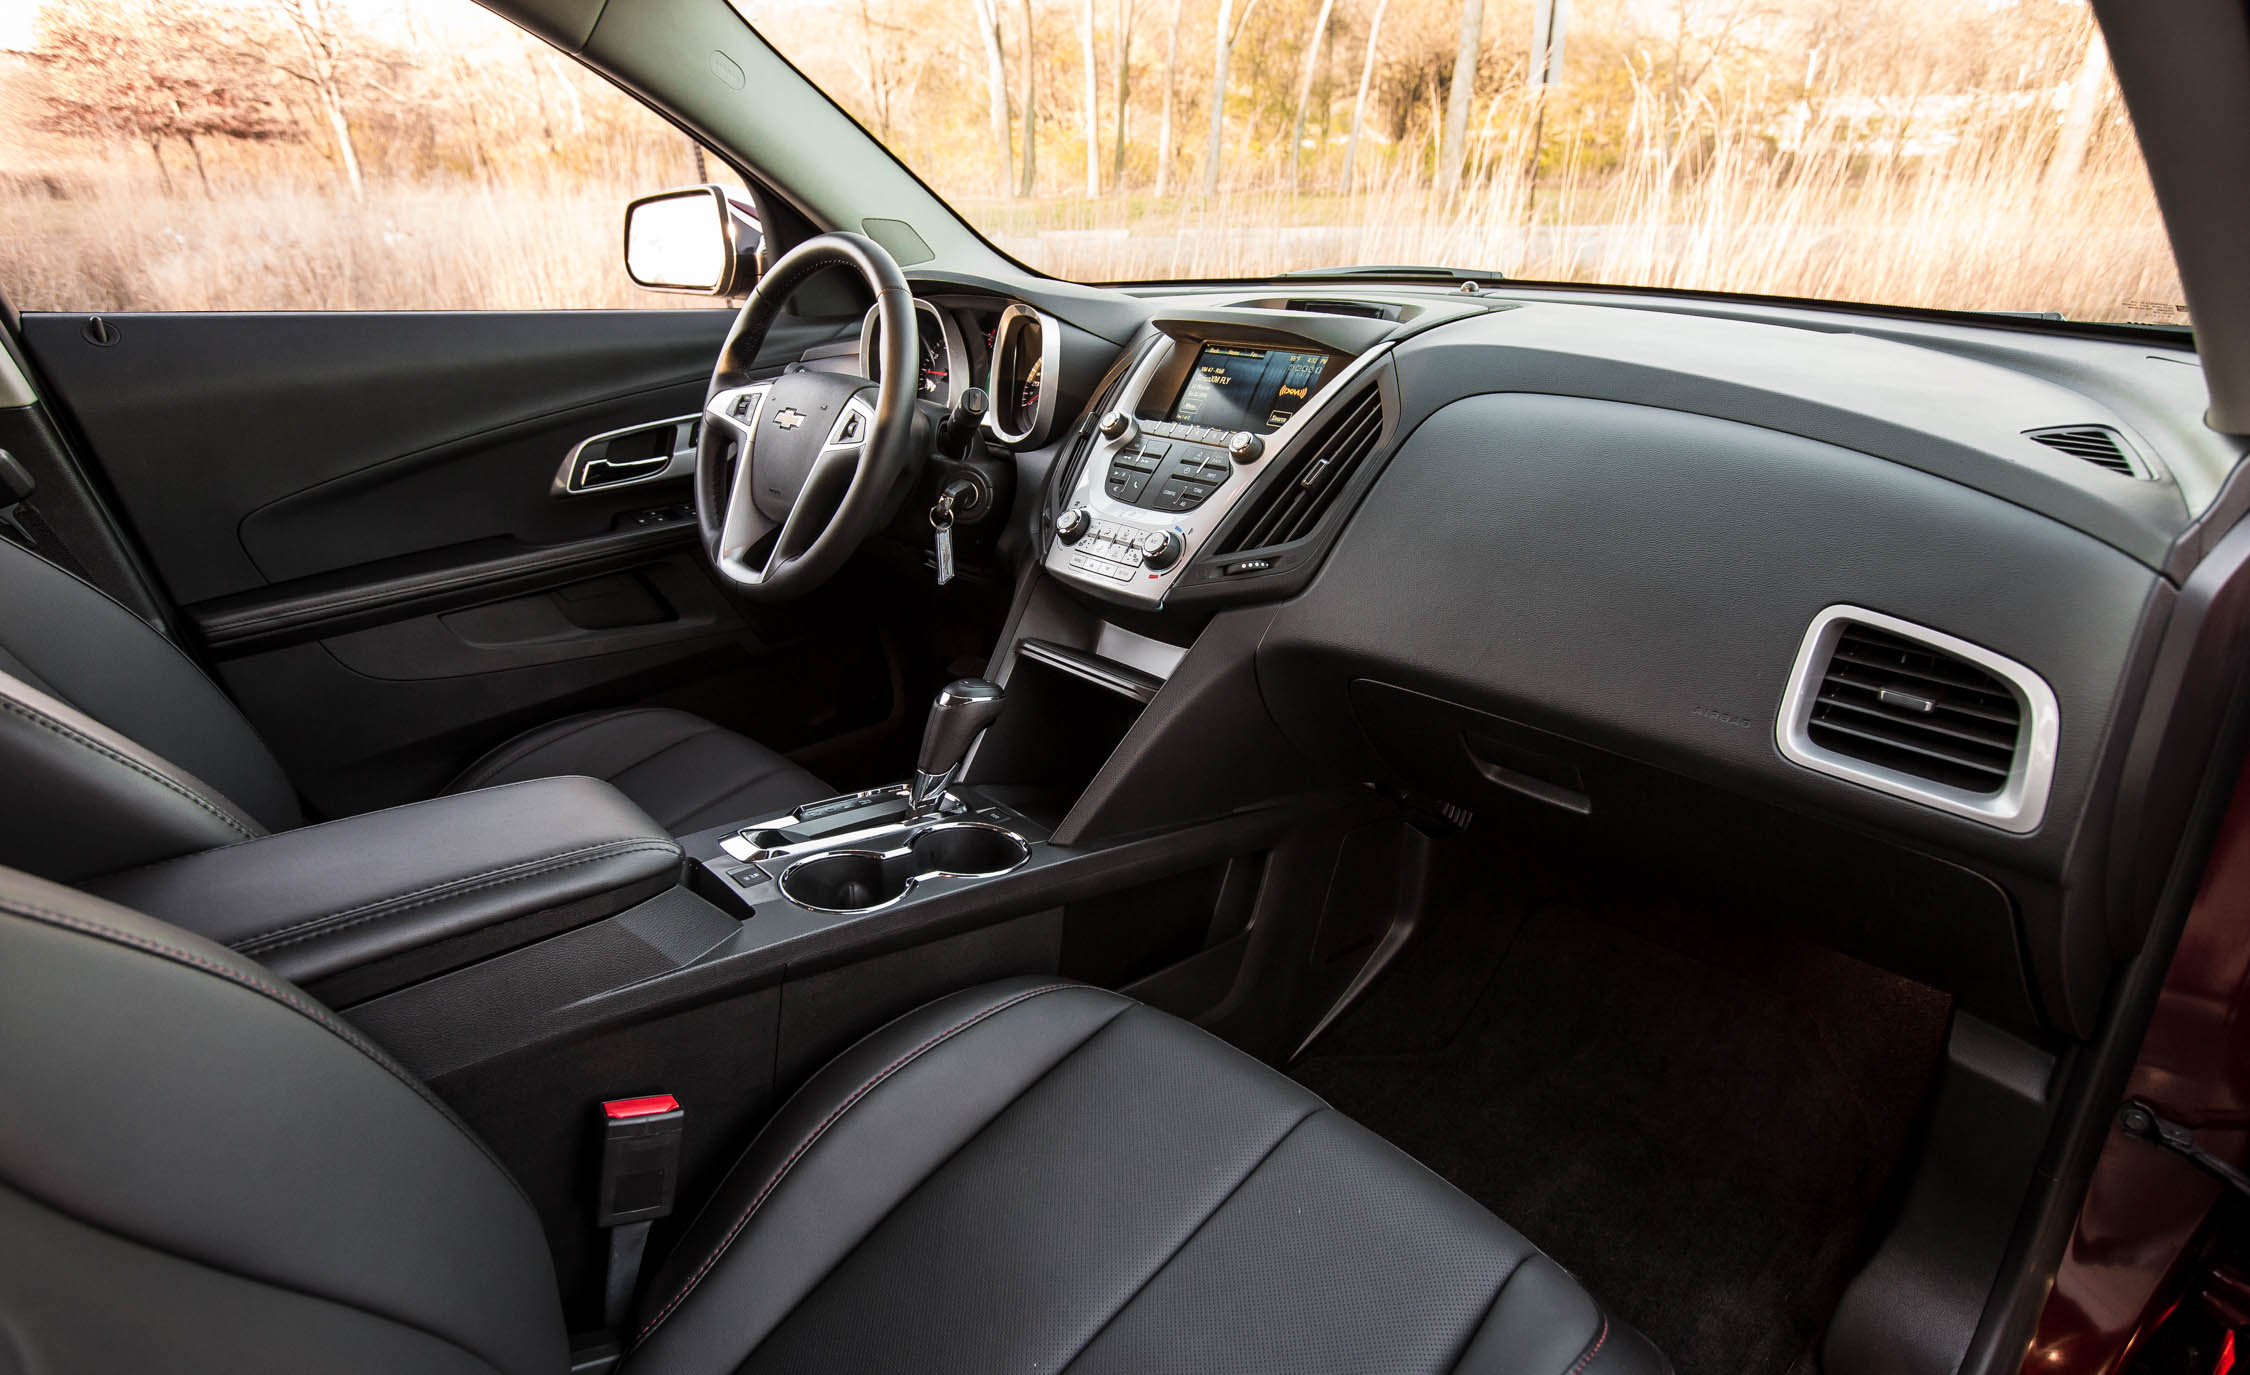 2016 Chevrolet Equinox LTZ Interior Dashboard